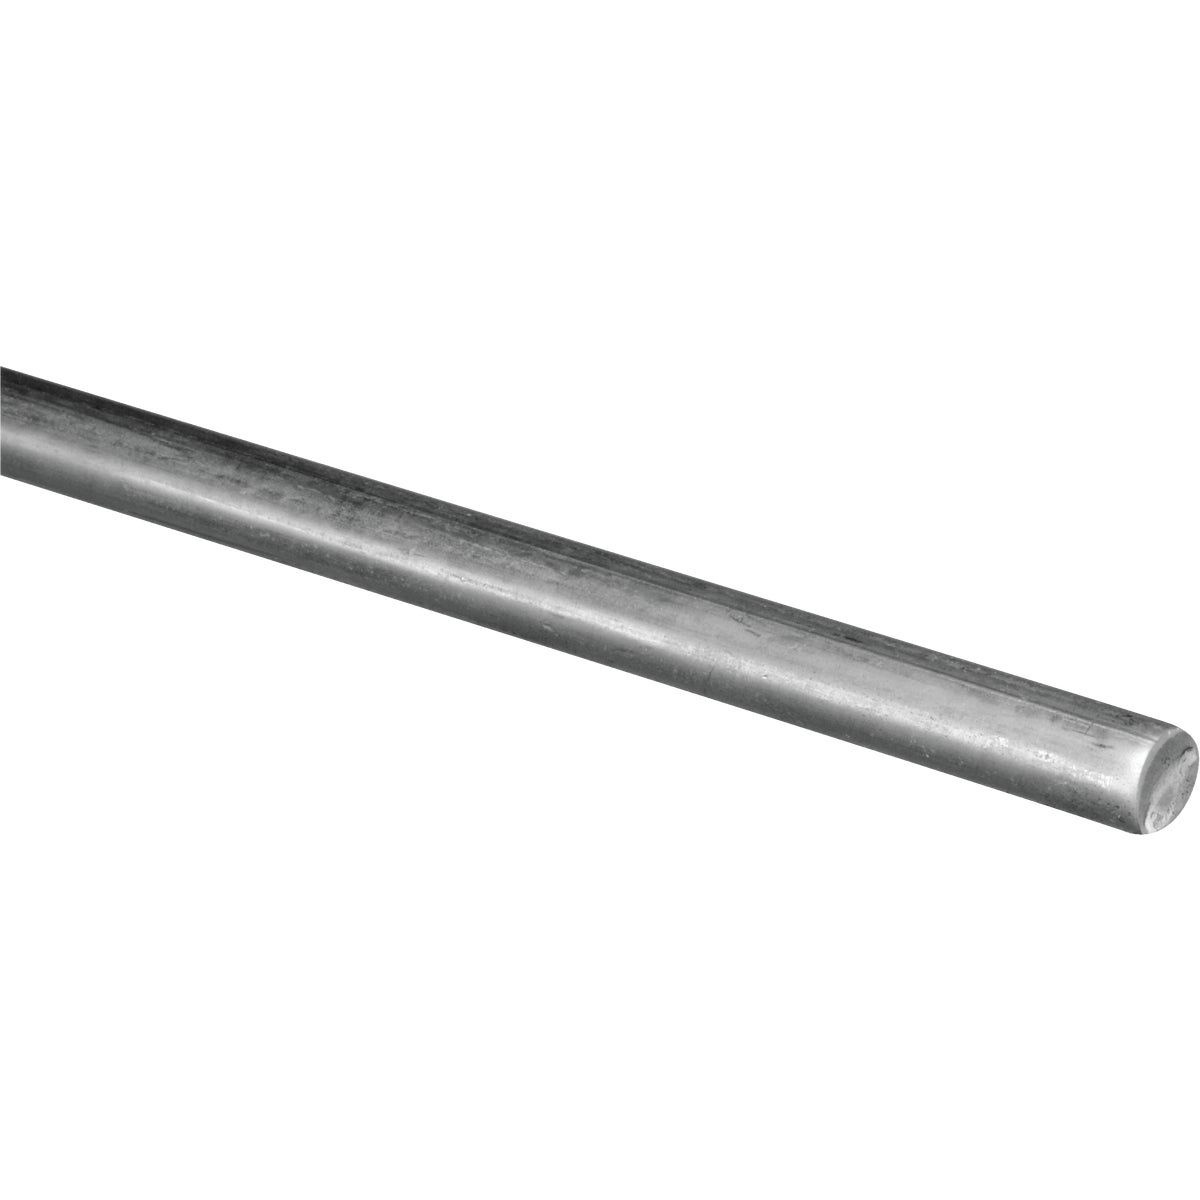 1/2X72 ZN SMOOTH ROD